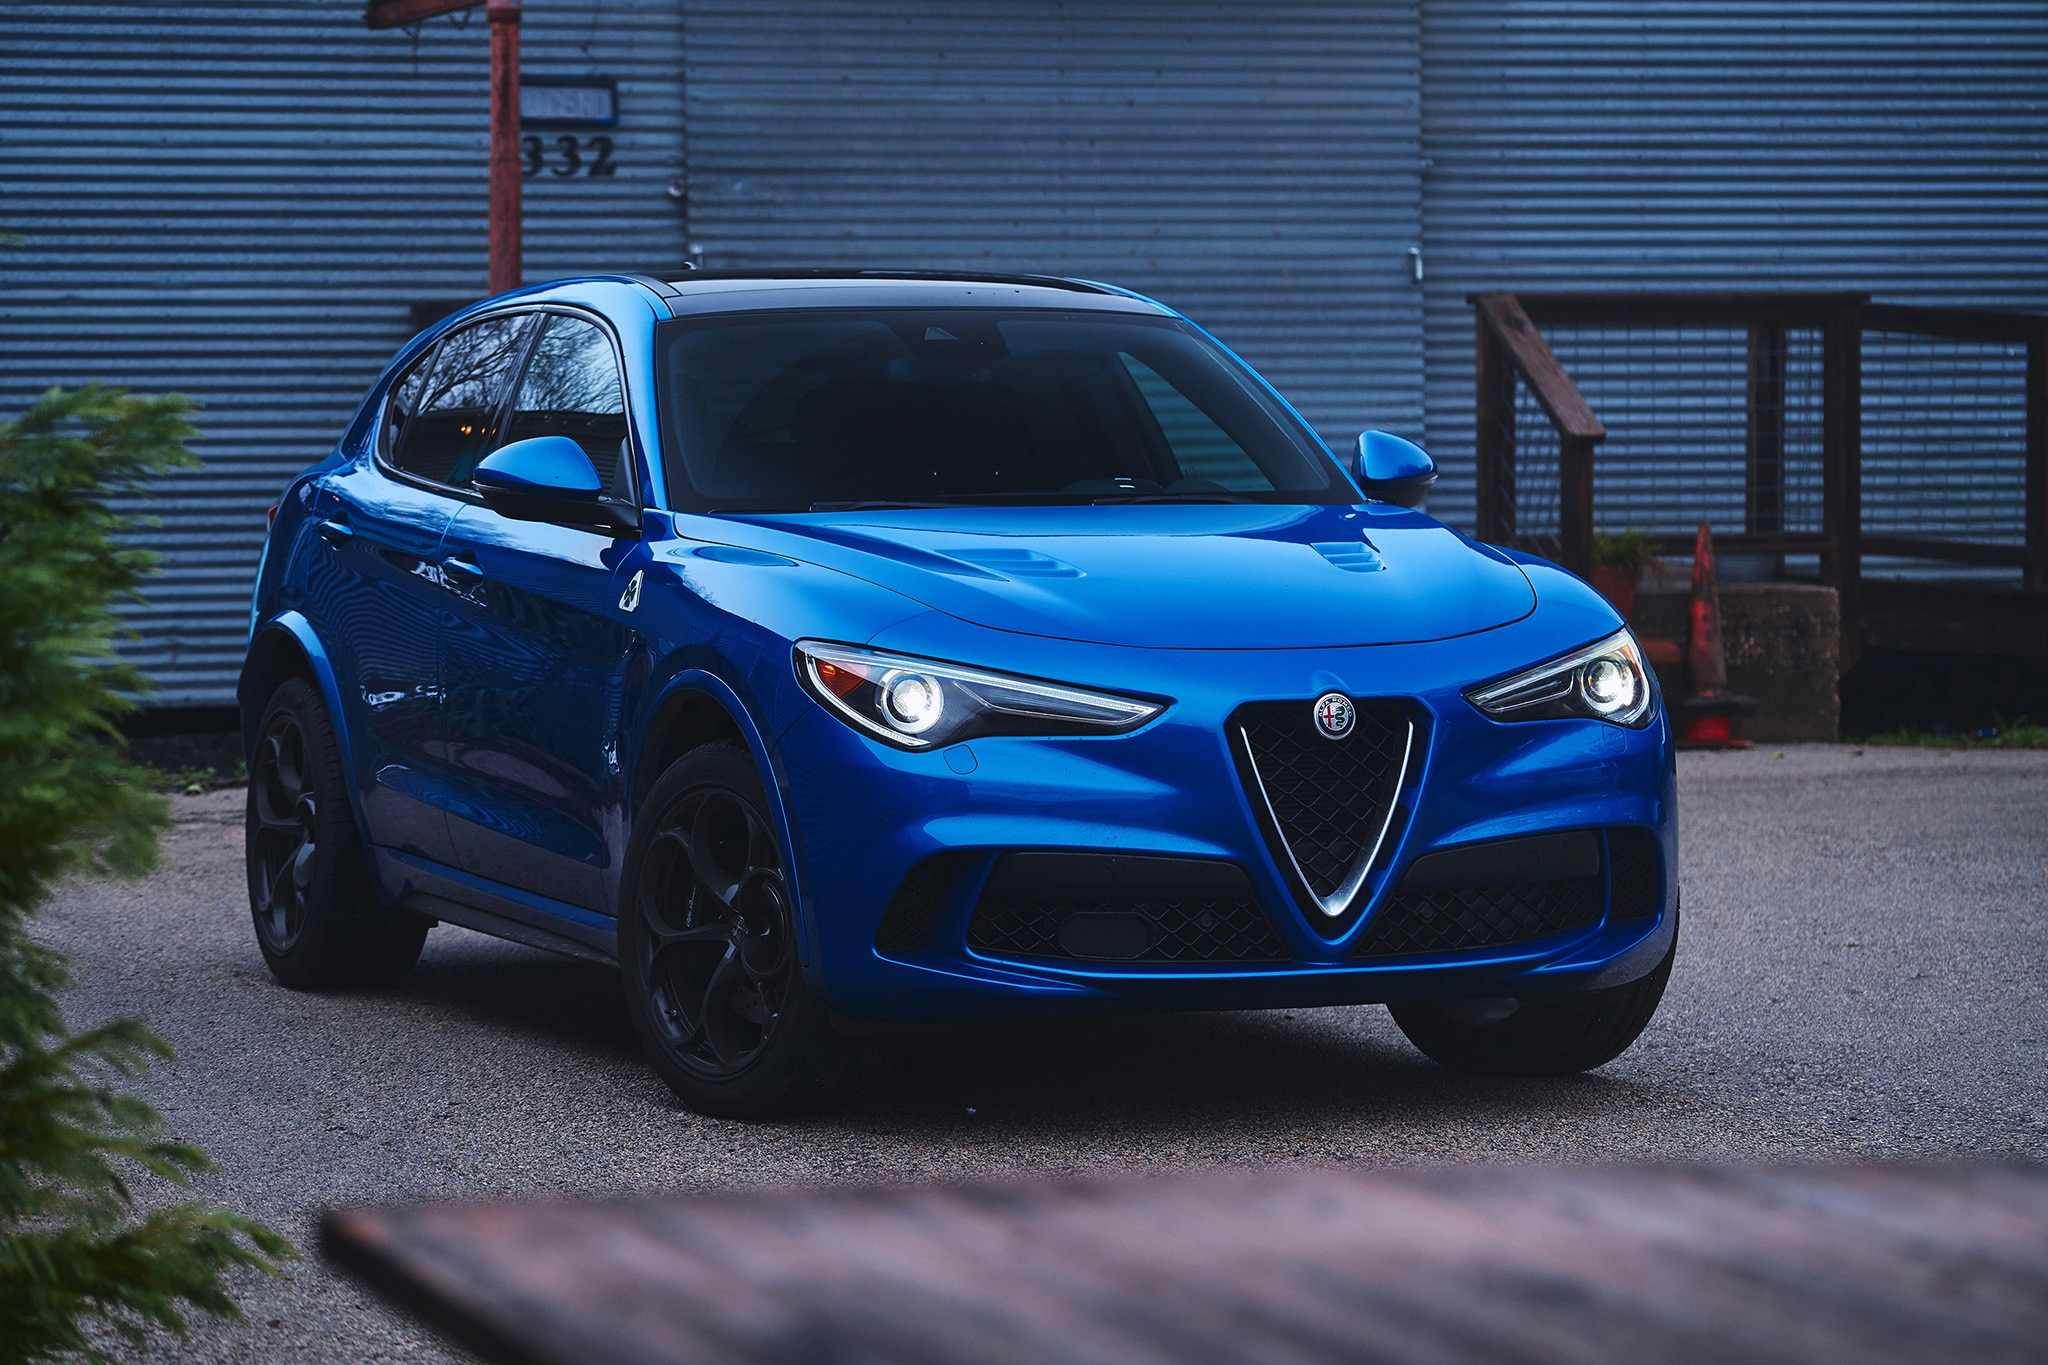 2018 Alfa Romeo Stelvio Price >> 2018 Alfa Romeo Stelvio Quadrifoglio First Drive Review | Automobile Magazine